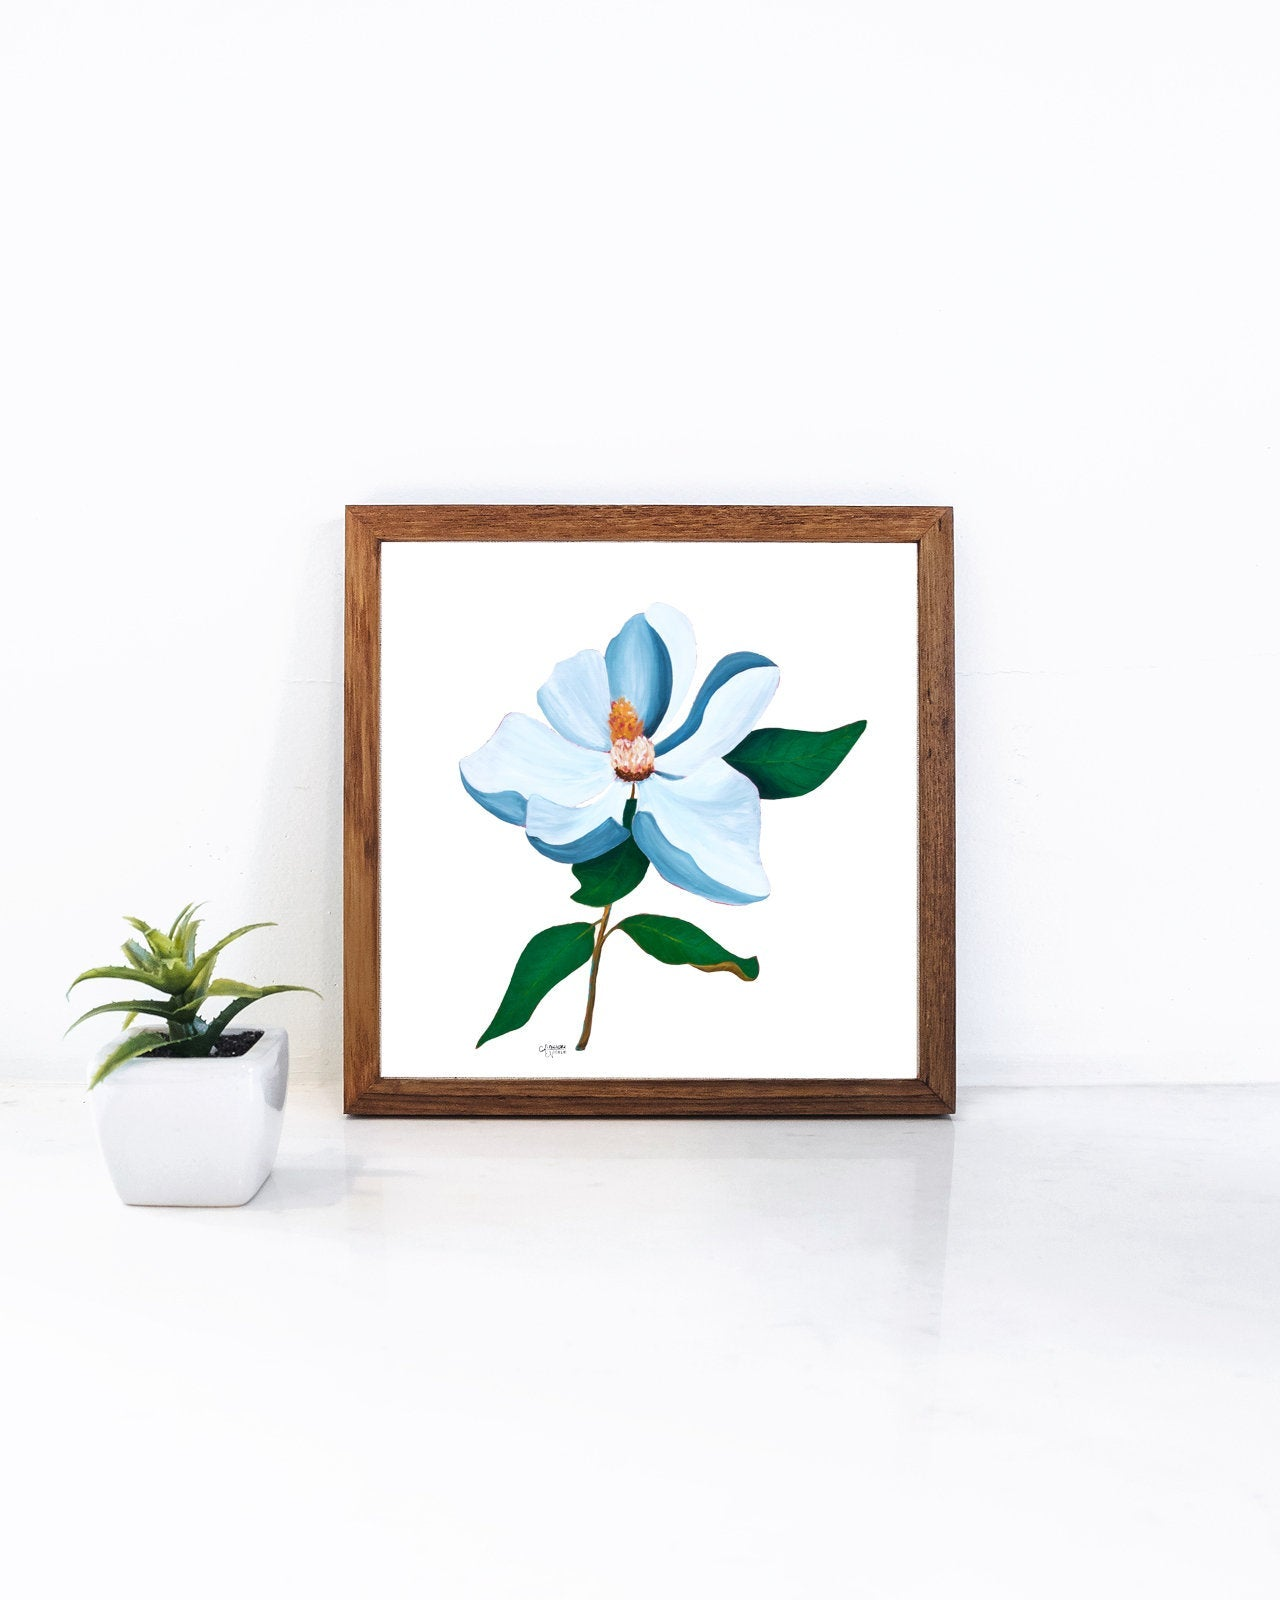 Botanical Print Set of 2, Palmetto Frond and Magnolia Flower Art